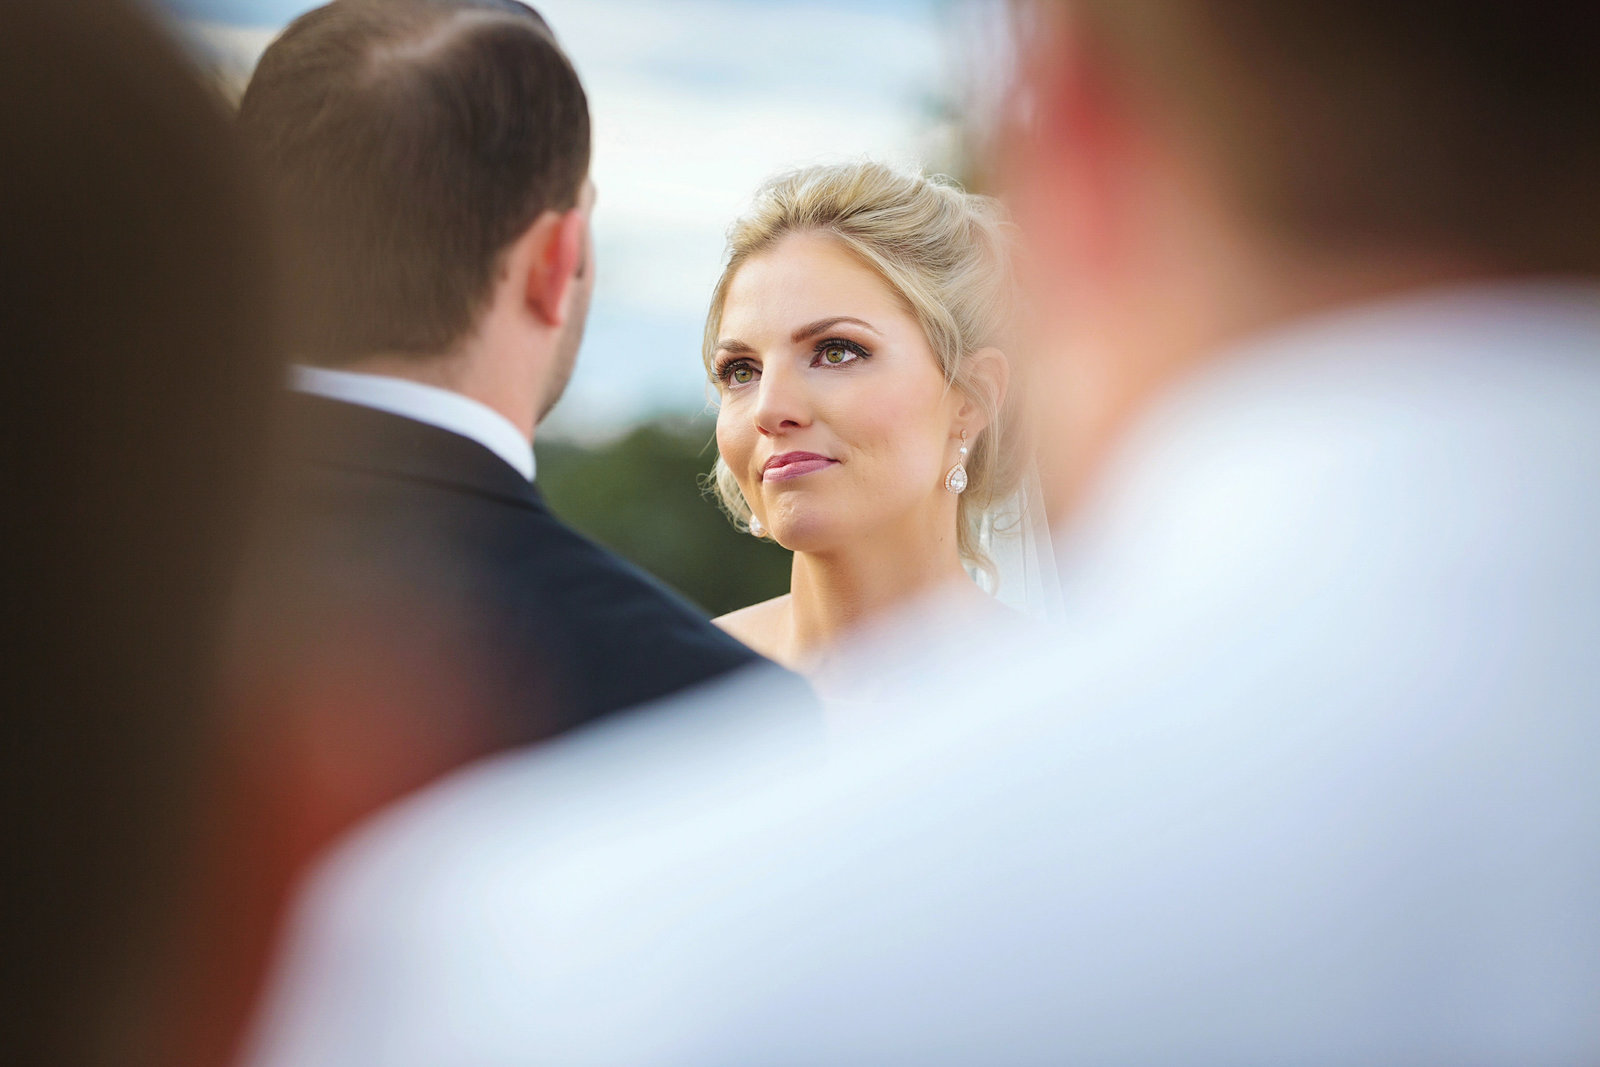 Bride looks into grooms eyes during wedding ceremony